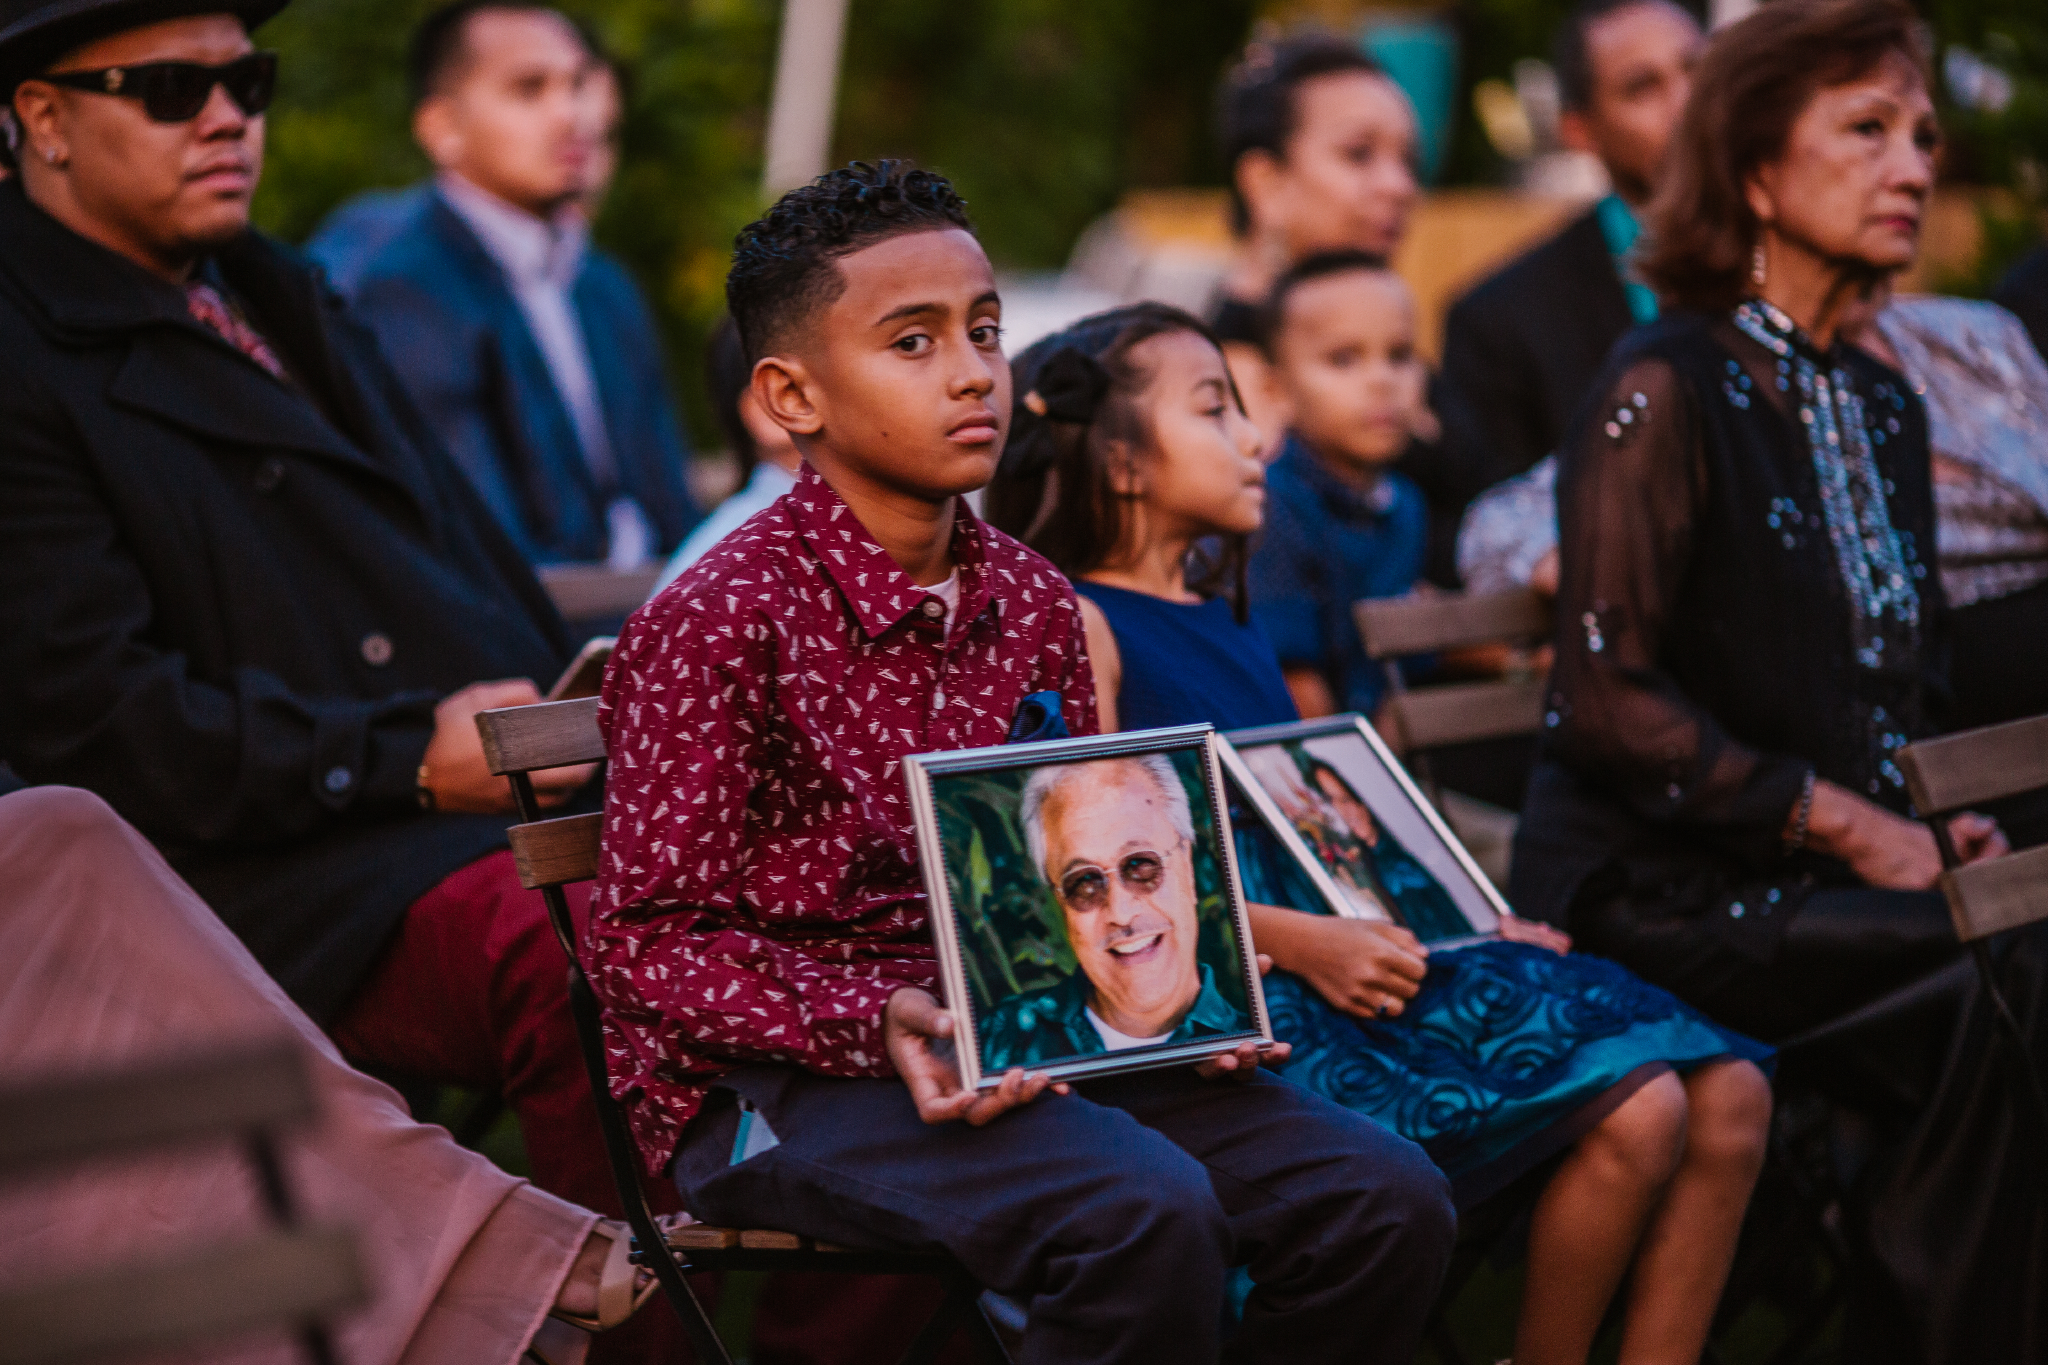 san diego wedding   photographer | child in crowd carrying picture frame looking into camera